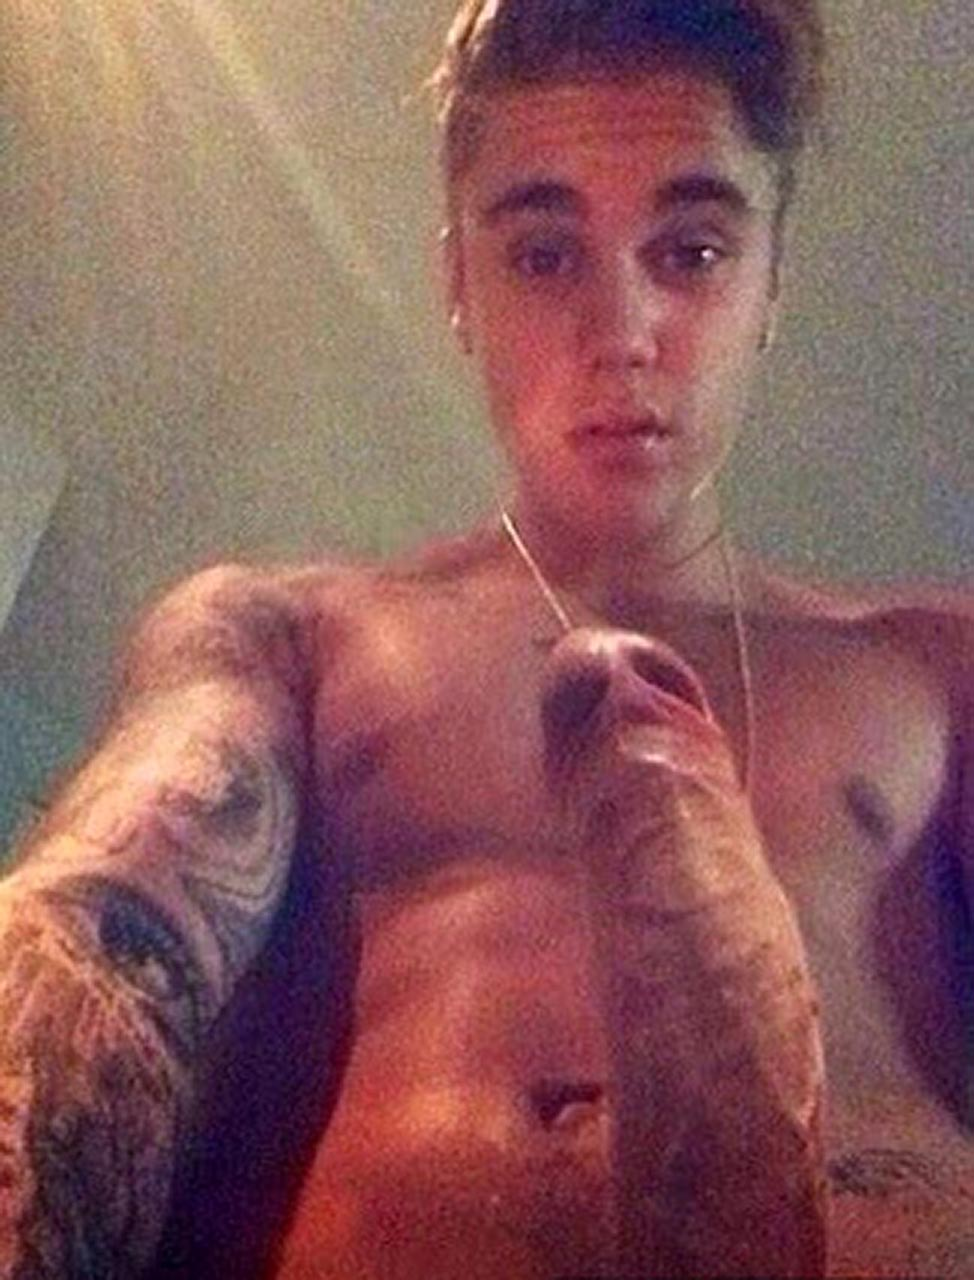 Justin Bieber Nude Leaked Photos Scandal Planet